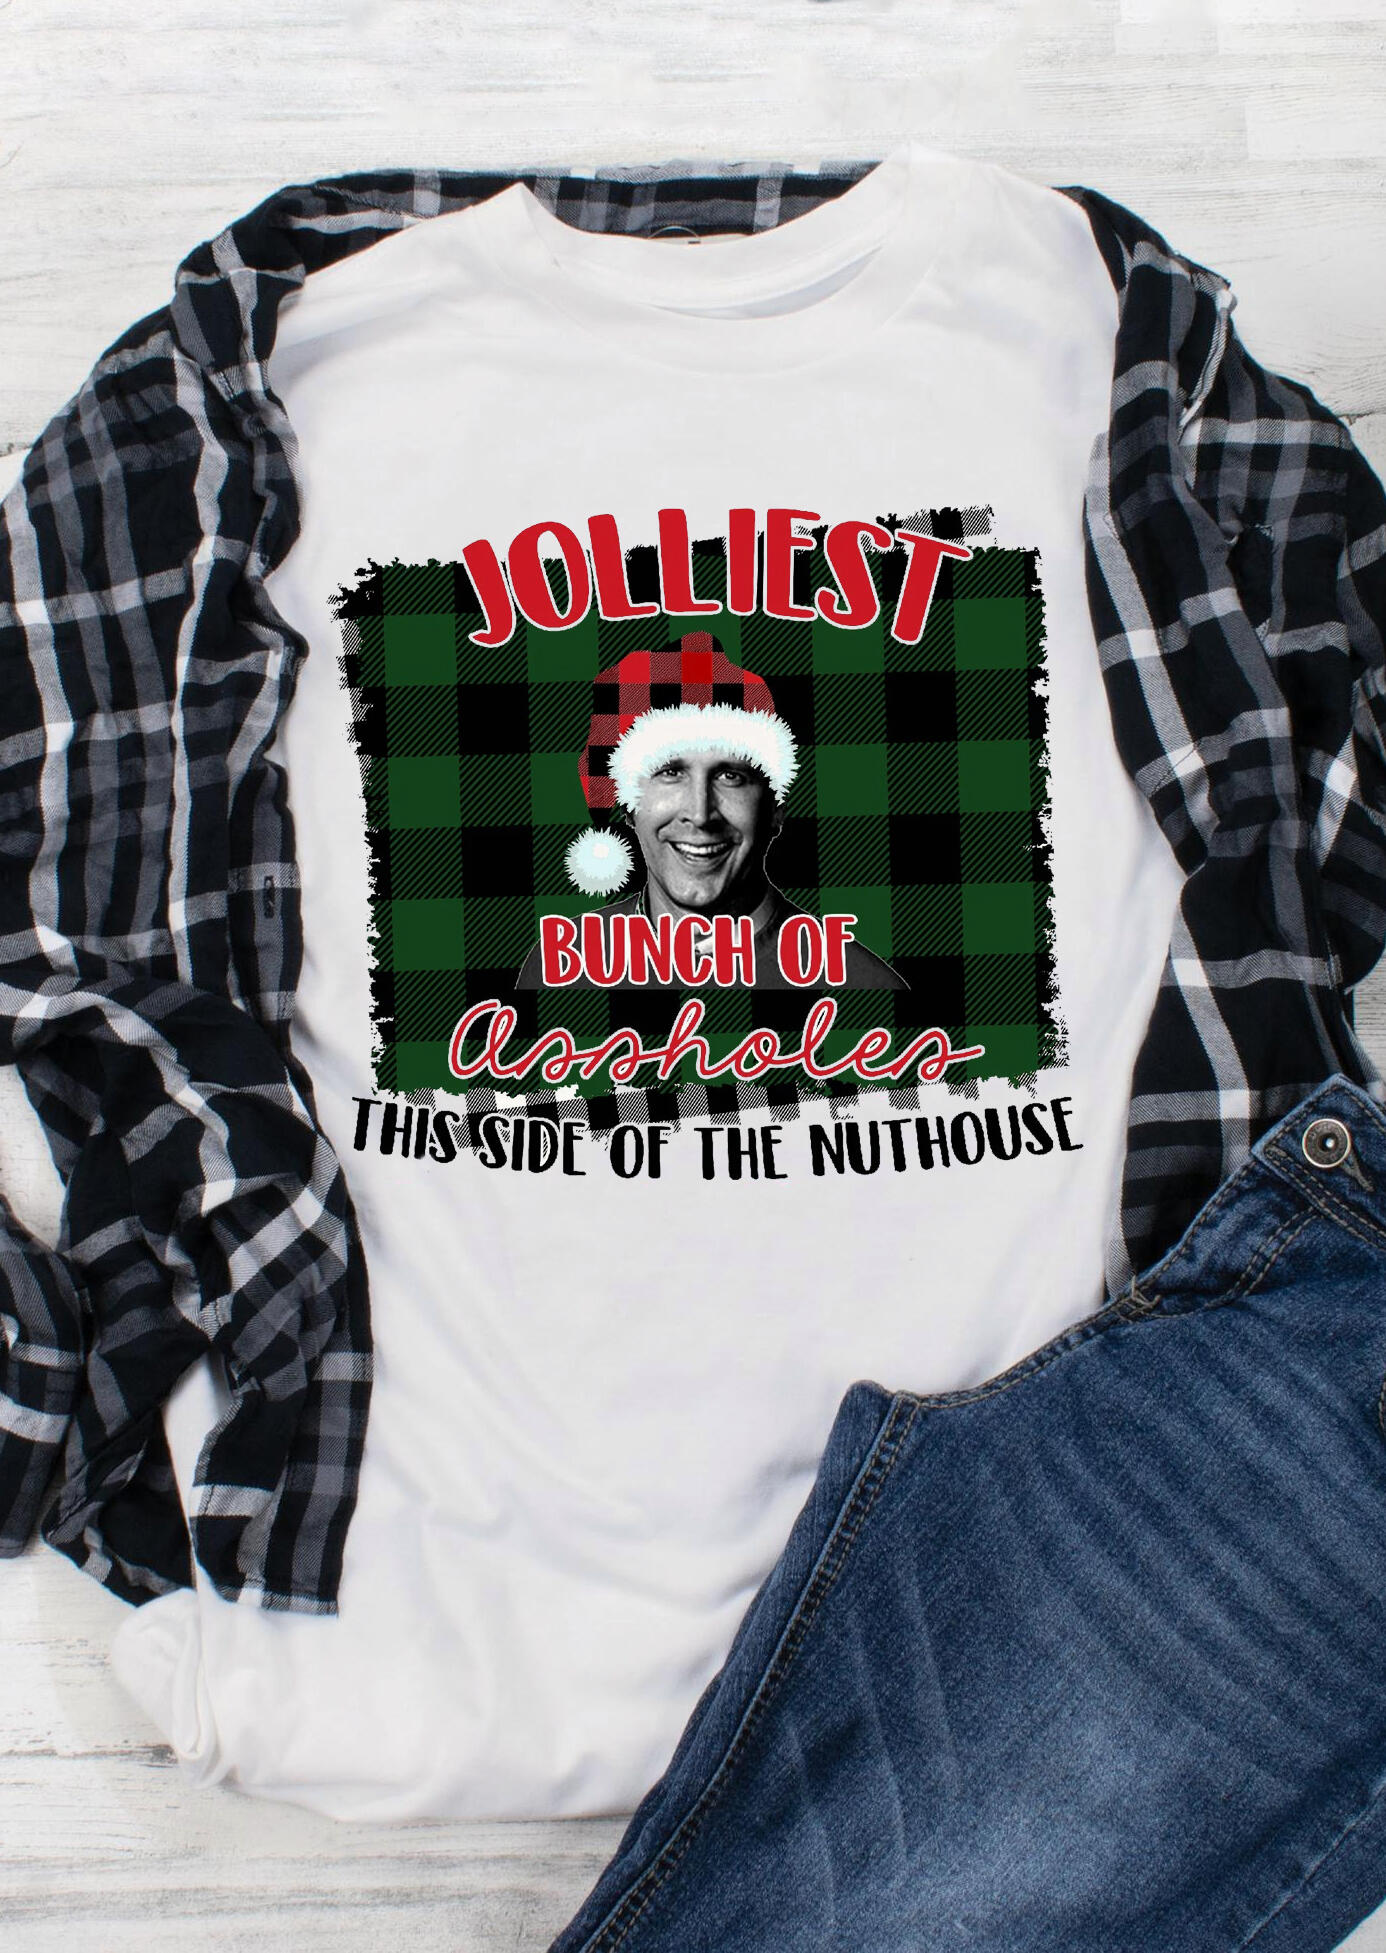 Jolliest Bunch Of Assholes Plaid Printed Christmas T-Shirt Tee - White, 460182